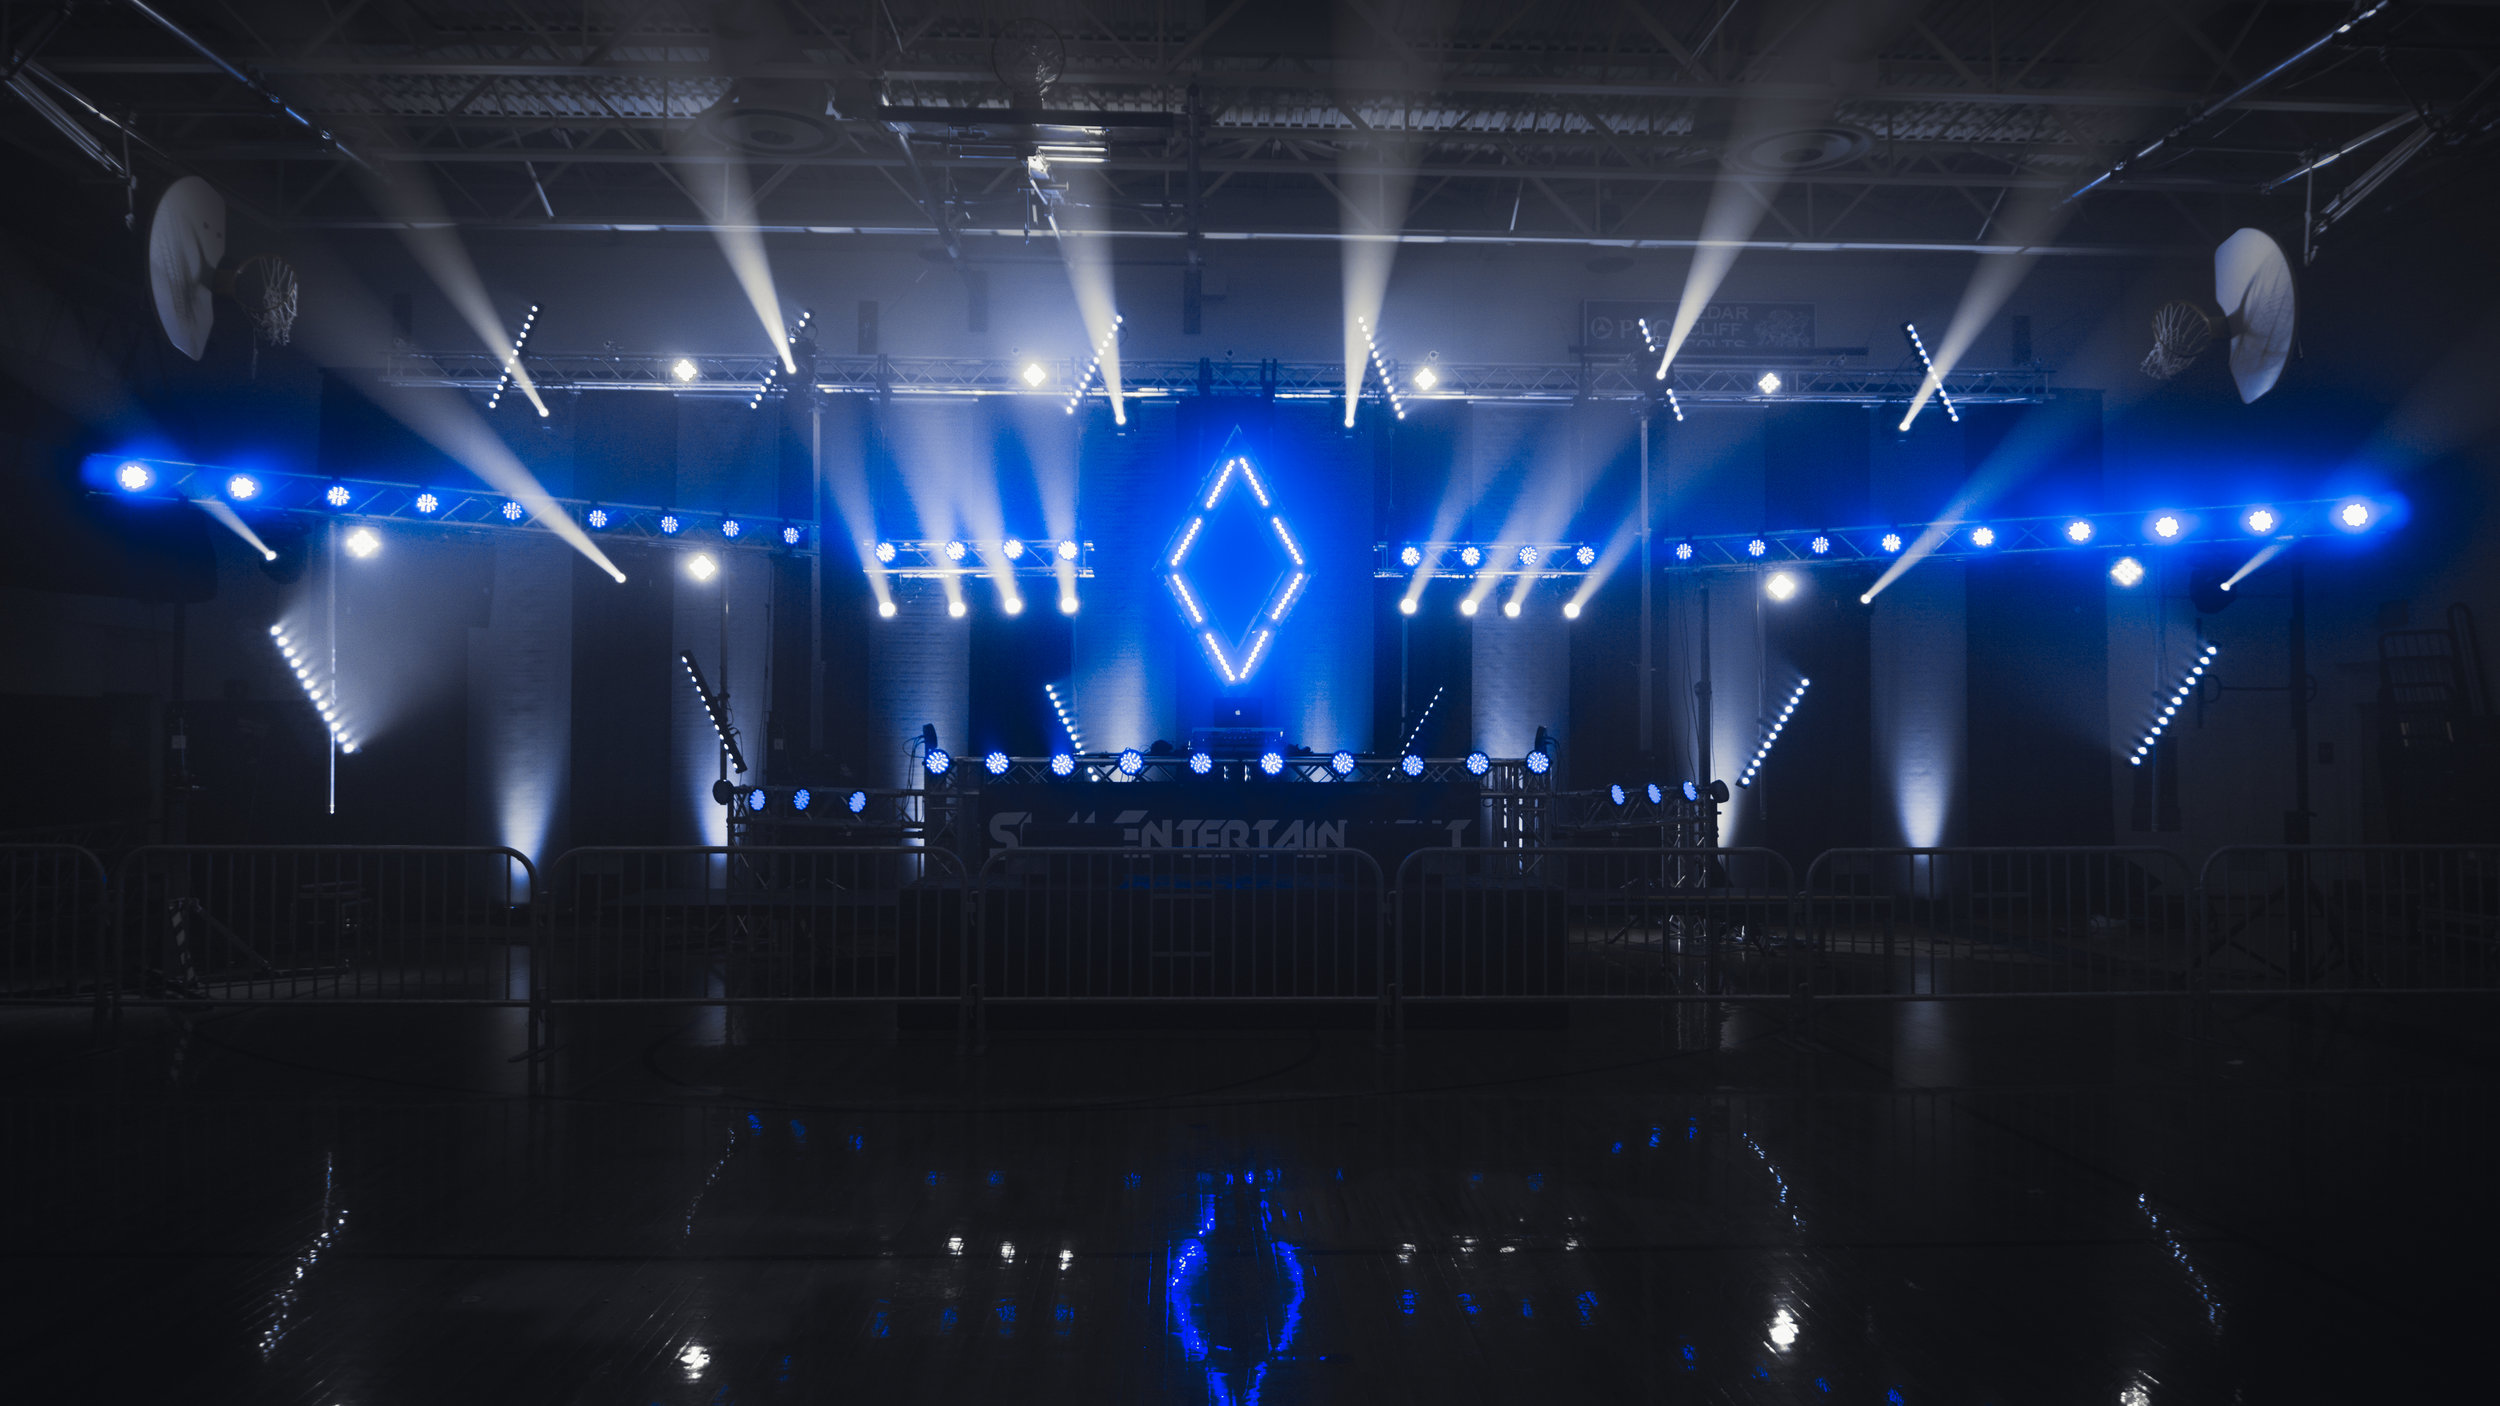 Concert Lighting - Concert-grade light shows Designed, programmed, & operated live to match the music perfectly(Avolites, Chauvet, Global Truss, Wenger)